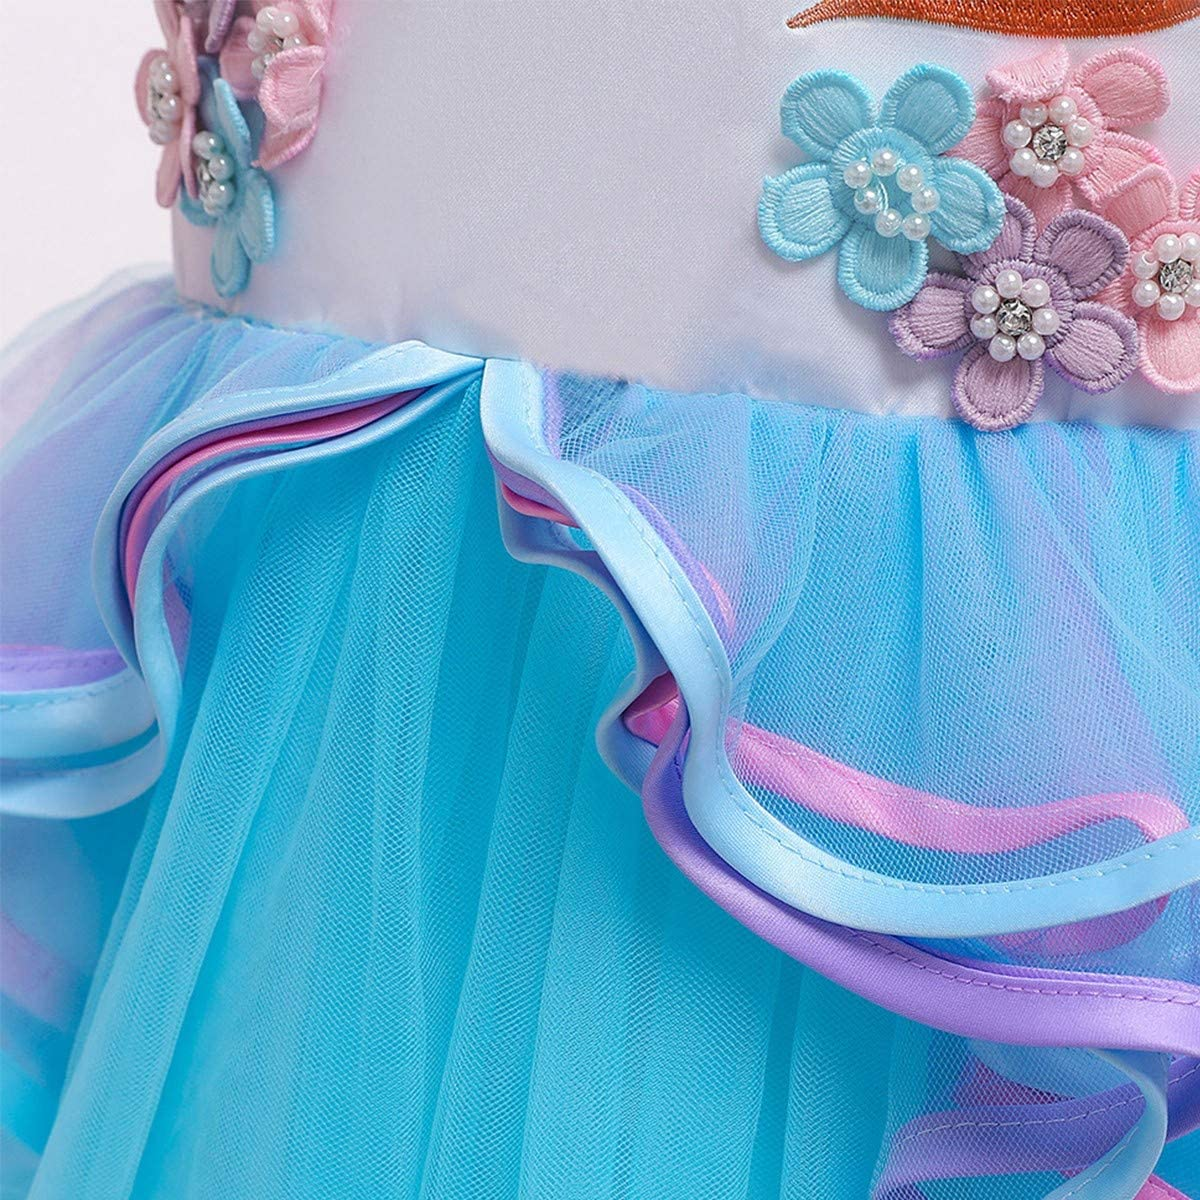 IZKIZF Girls Unicorn Costume Princess Long Maxi Tulle Dress w//Headband Birthday Party Carnival Cosplay Dress Up Outfits